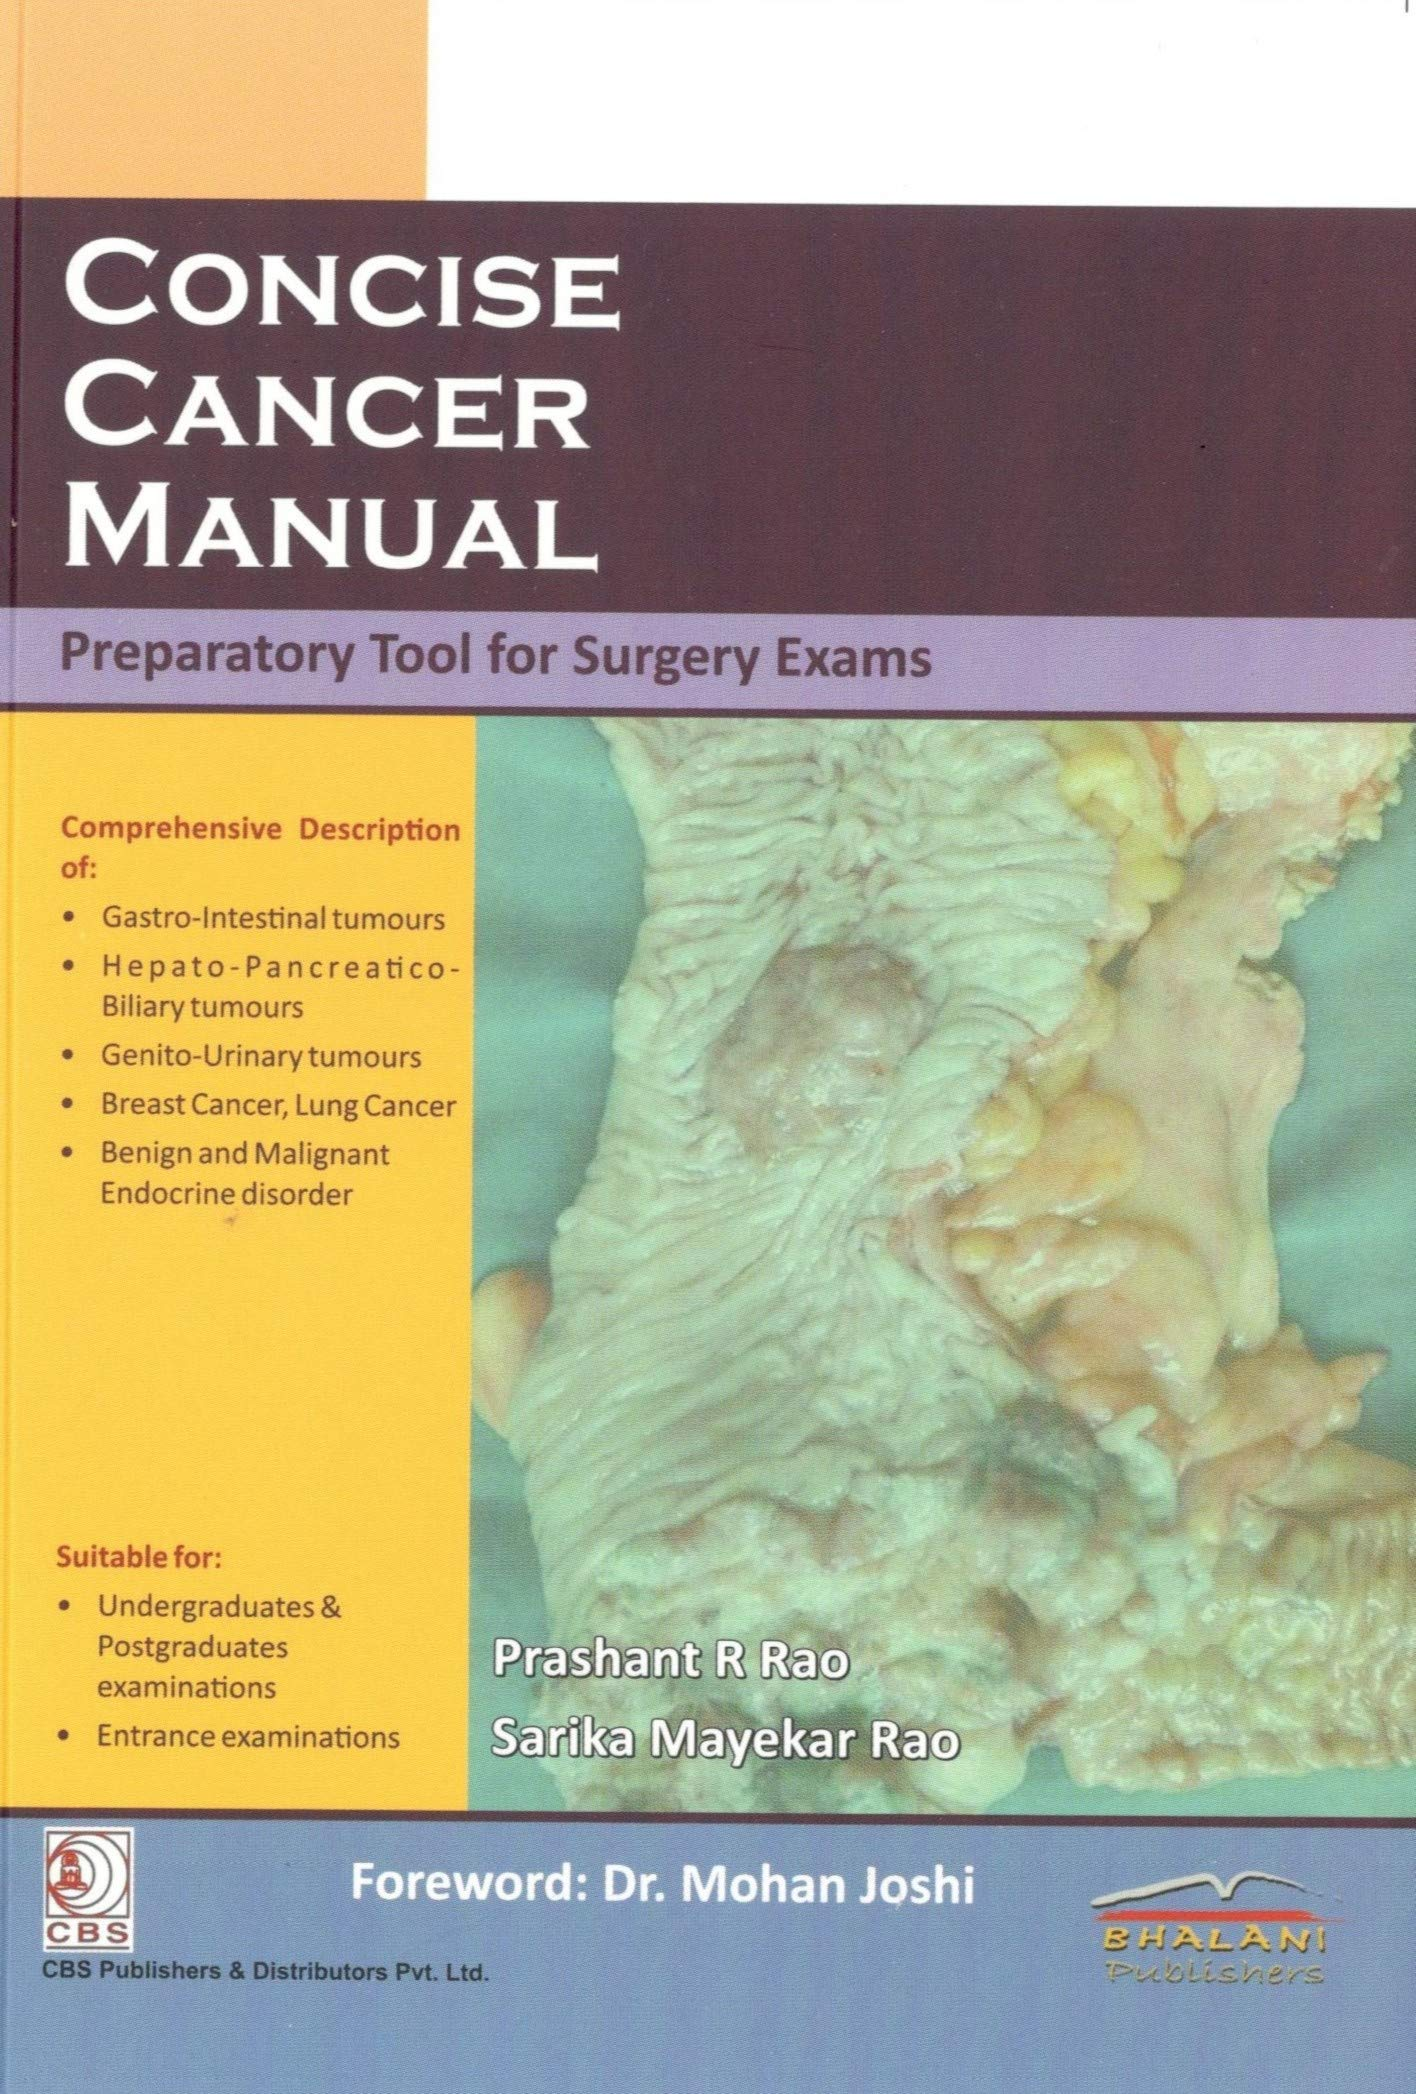 Concise Cancer Manual preparatory tool for surgery exams